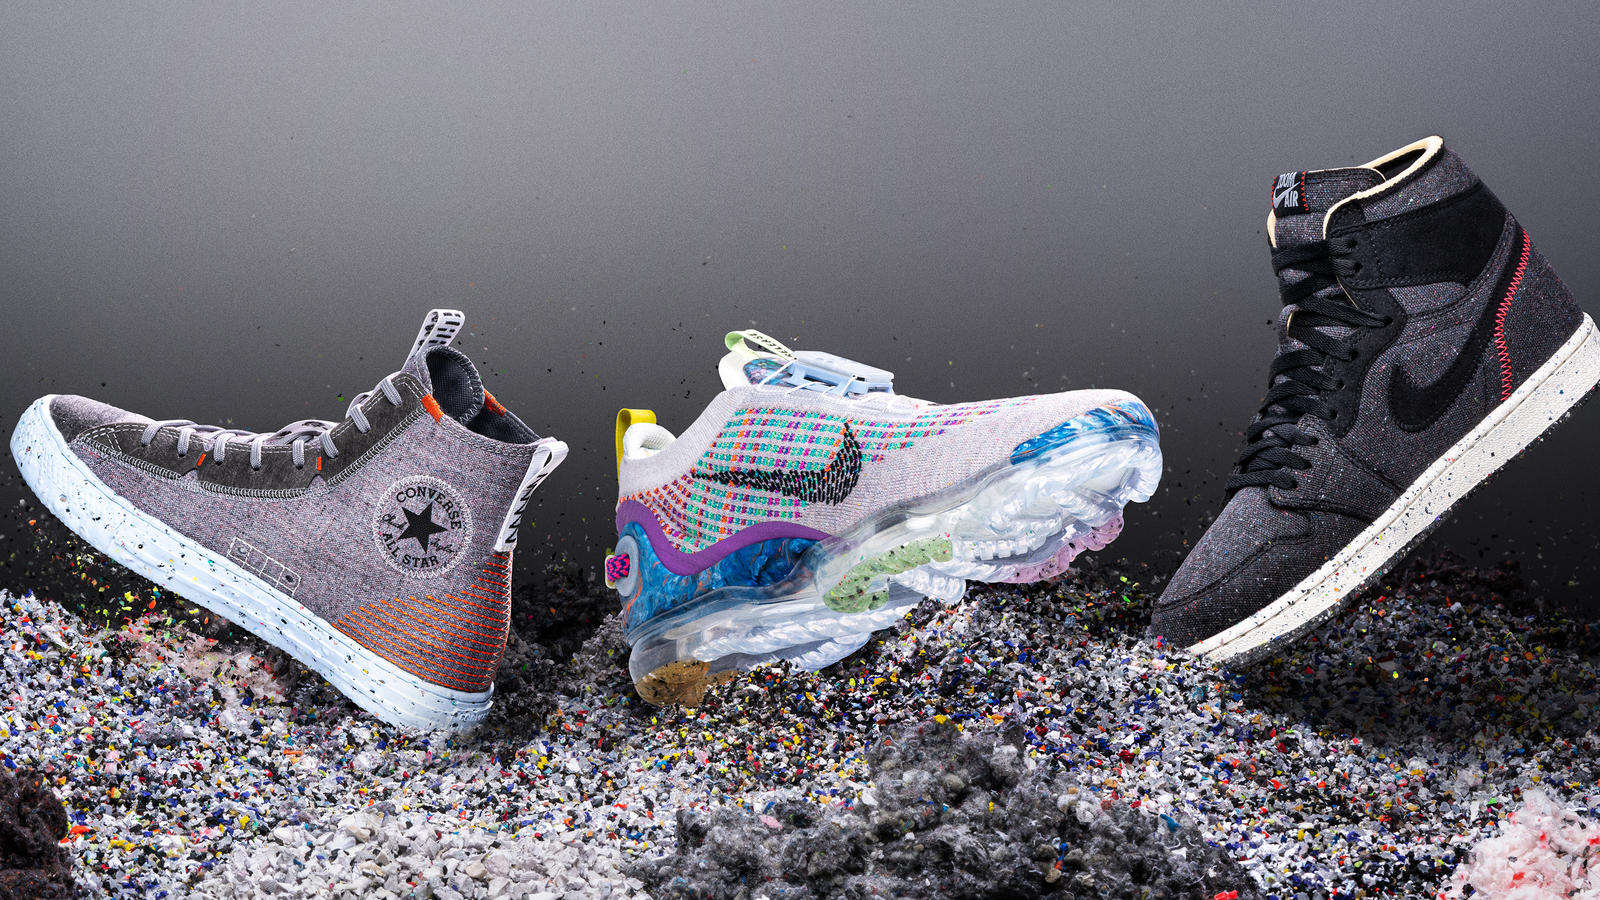 Nike Converse And Jordan Sustainable Design And Innovation 2020 Nike News